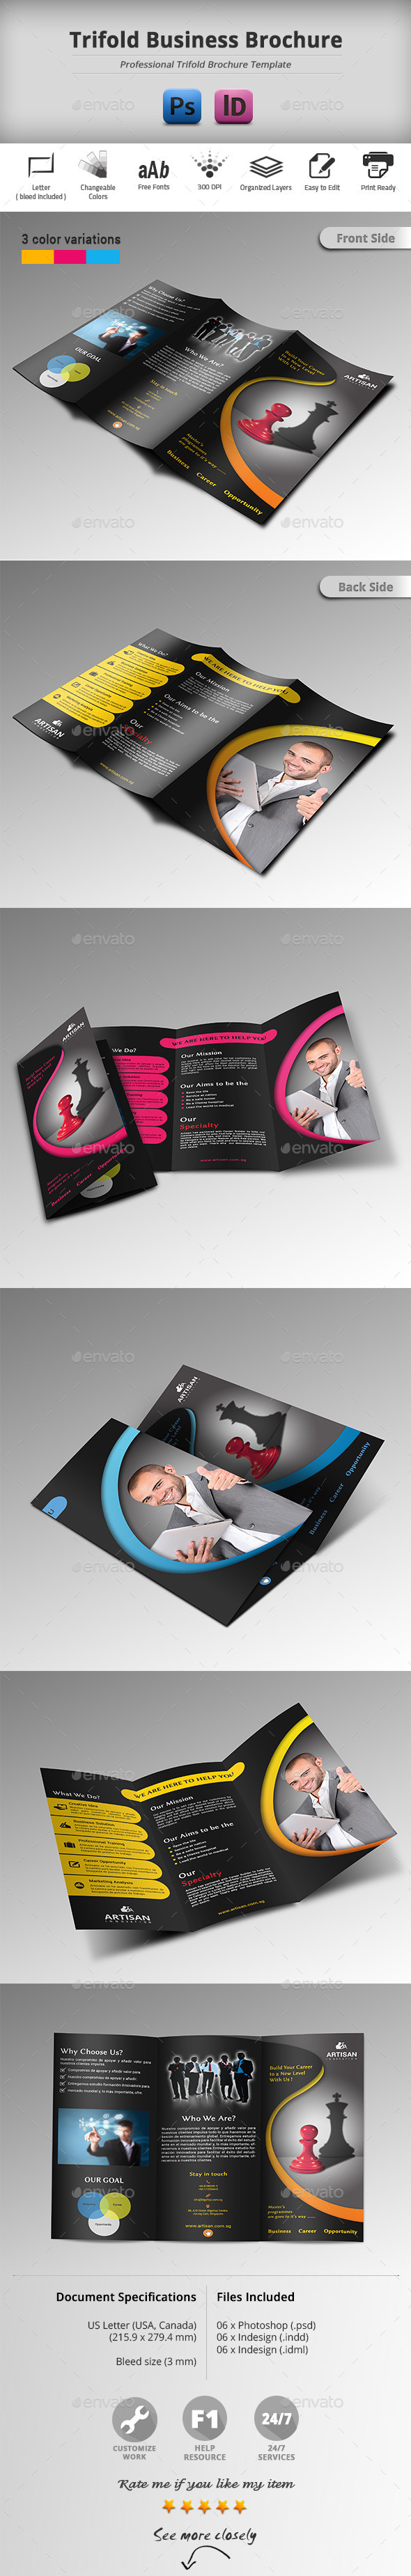 GraphicRiver Trifold Business Brochure 11252337